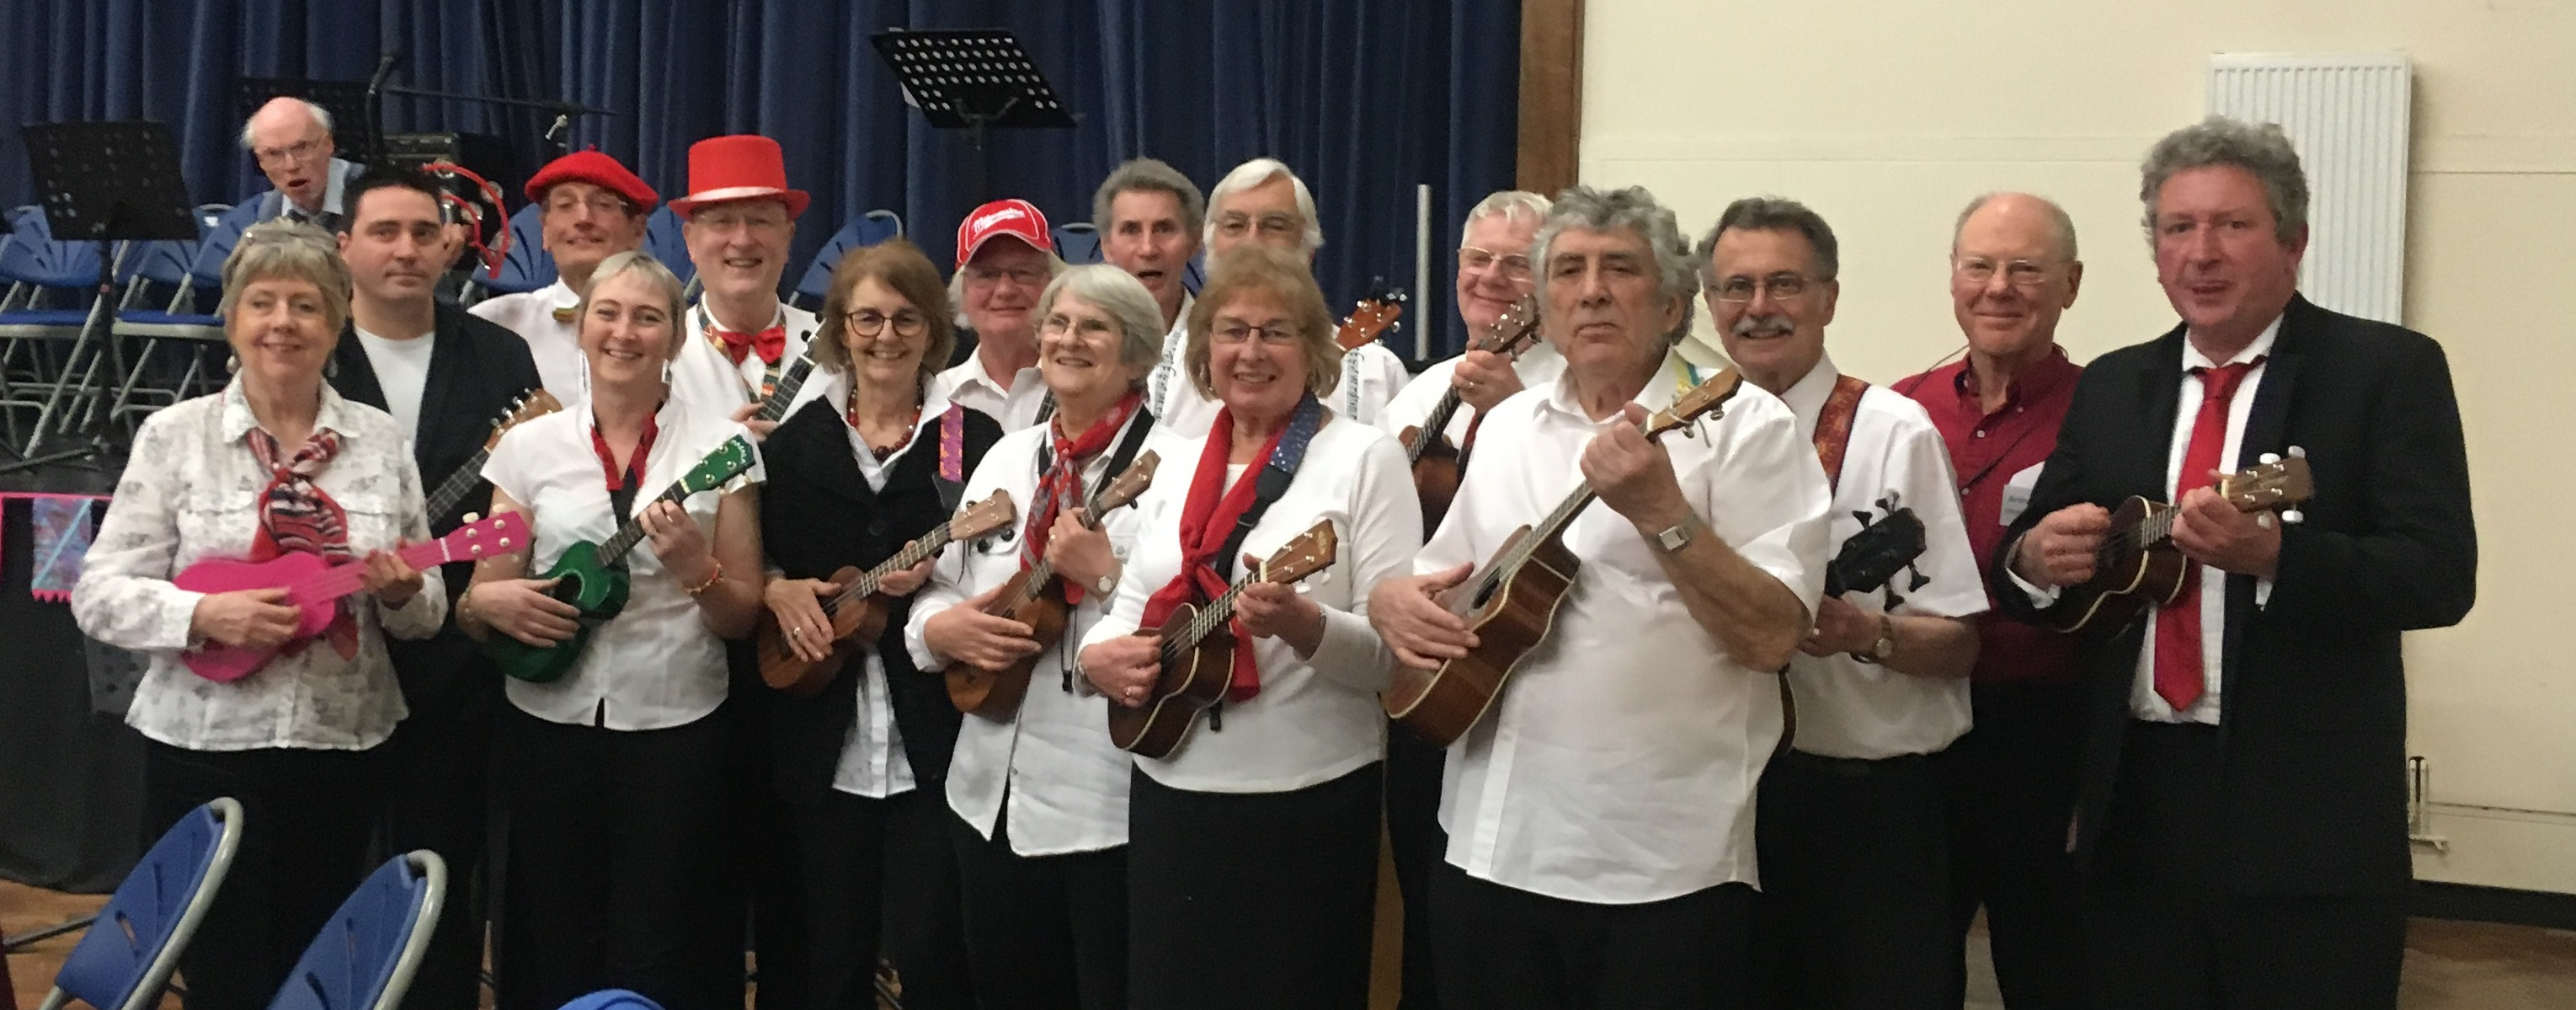 Herts Ukefest April 2017